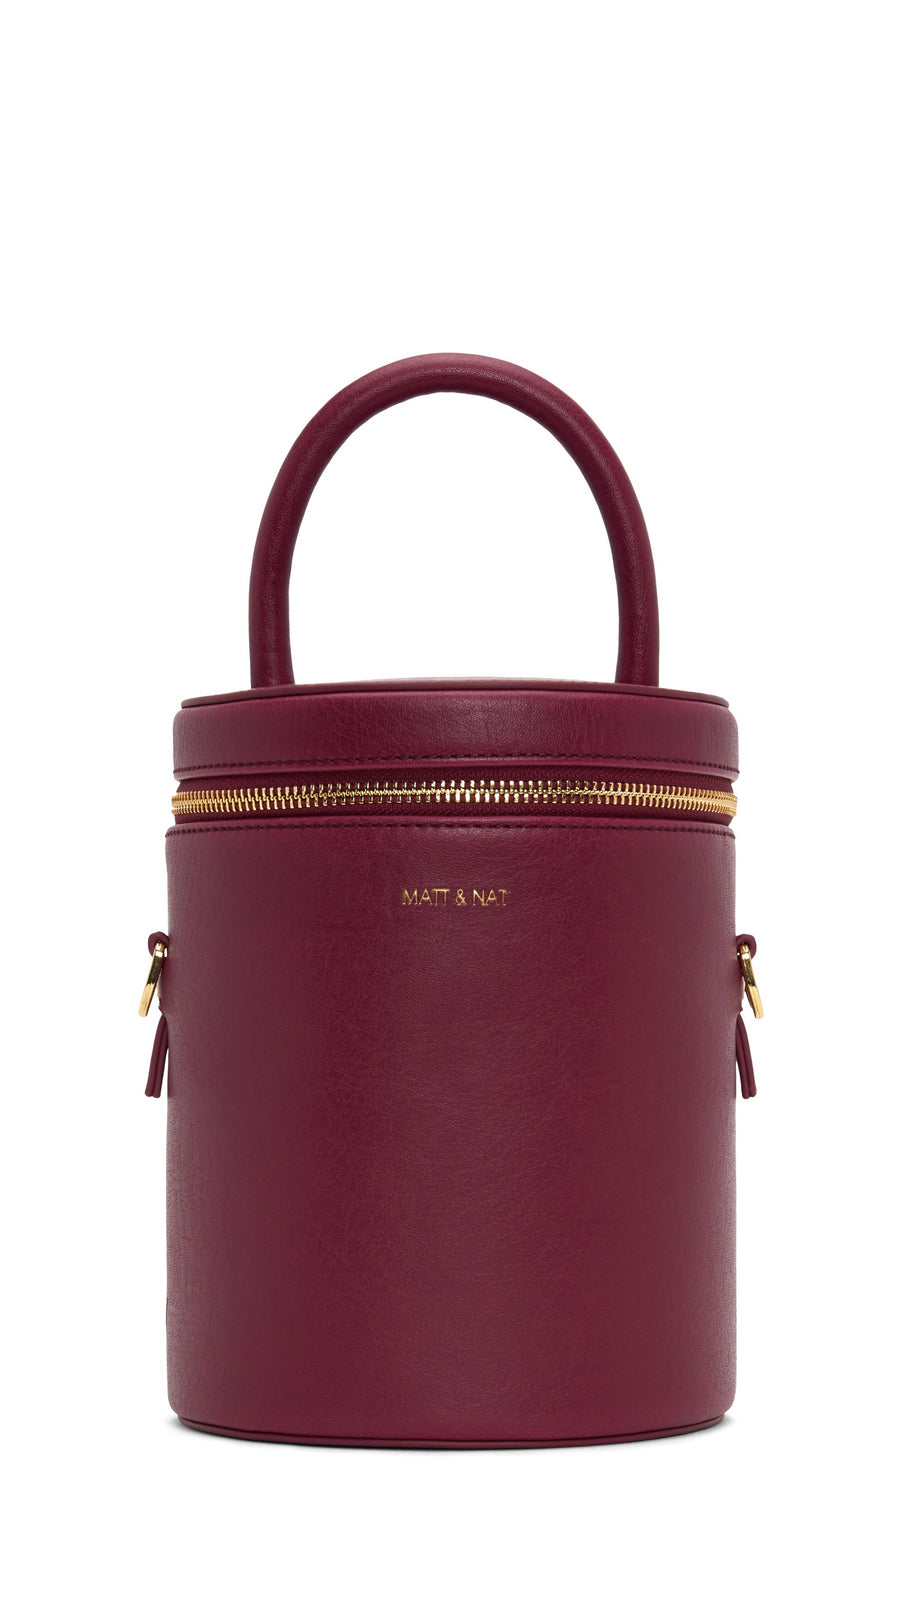 Matt & Nat DOV Drum Crossbody Bag in Garnet and Gold